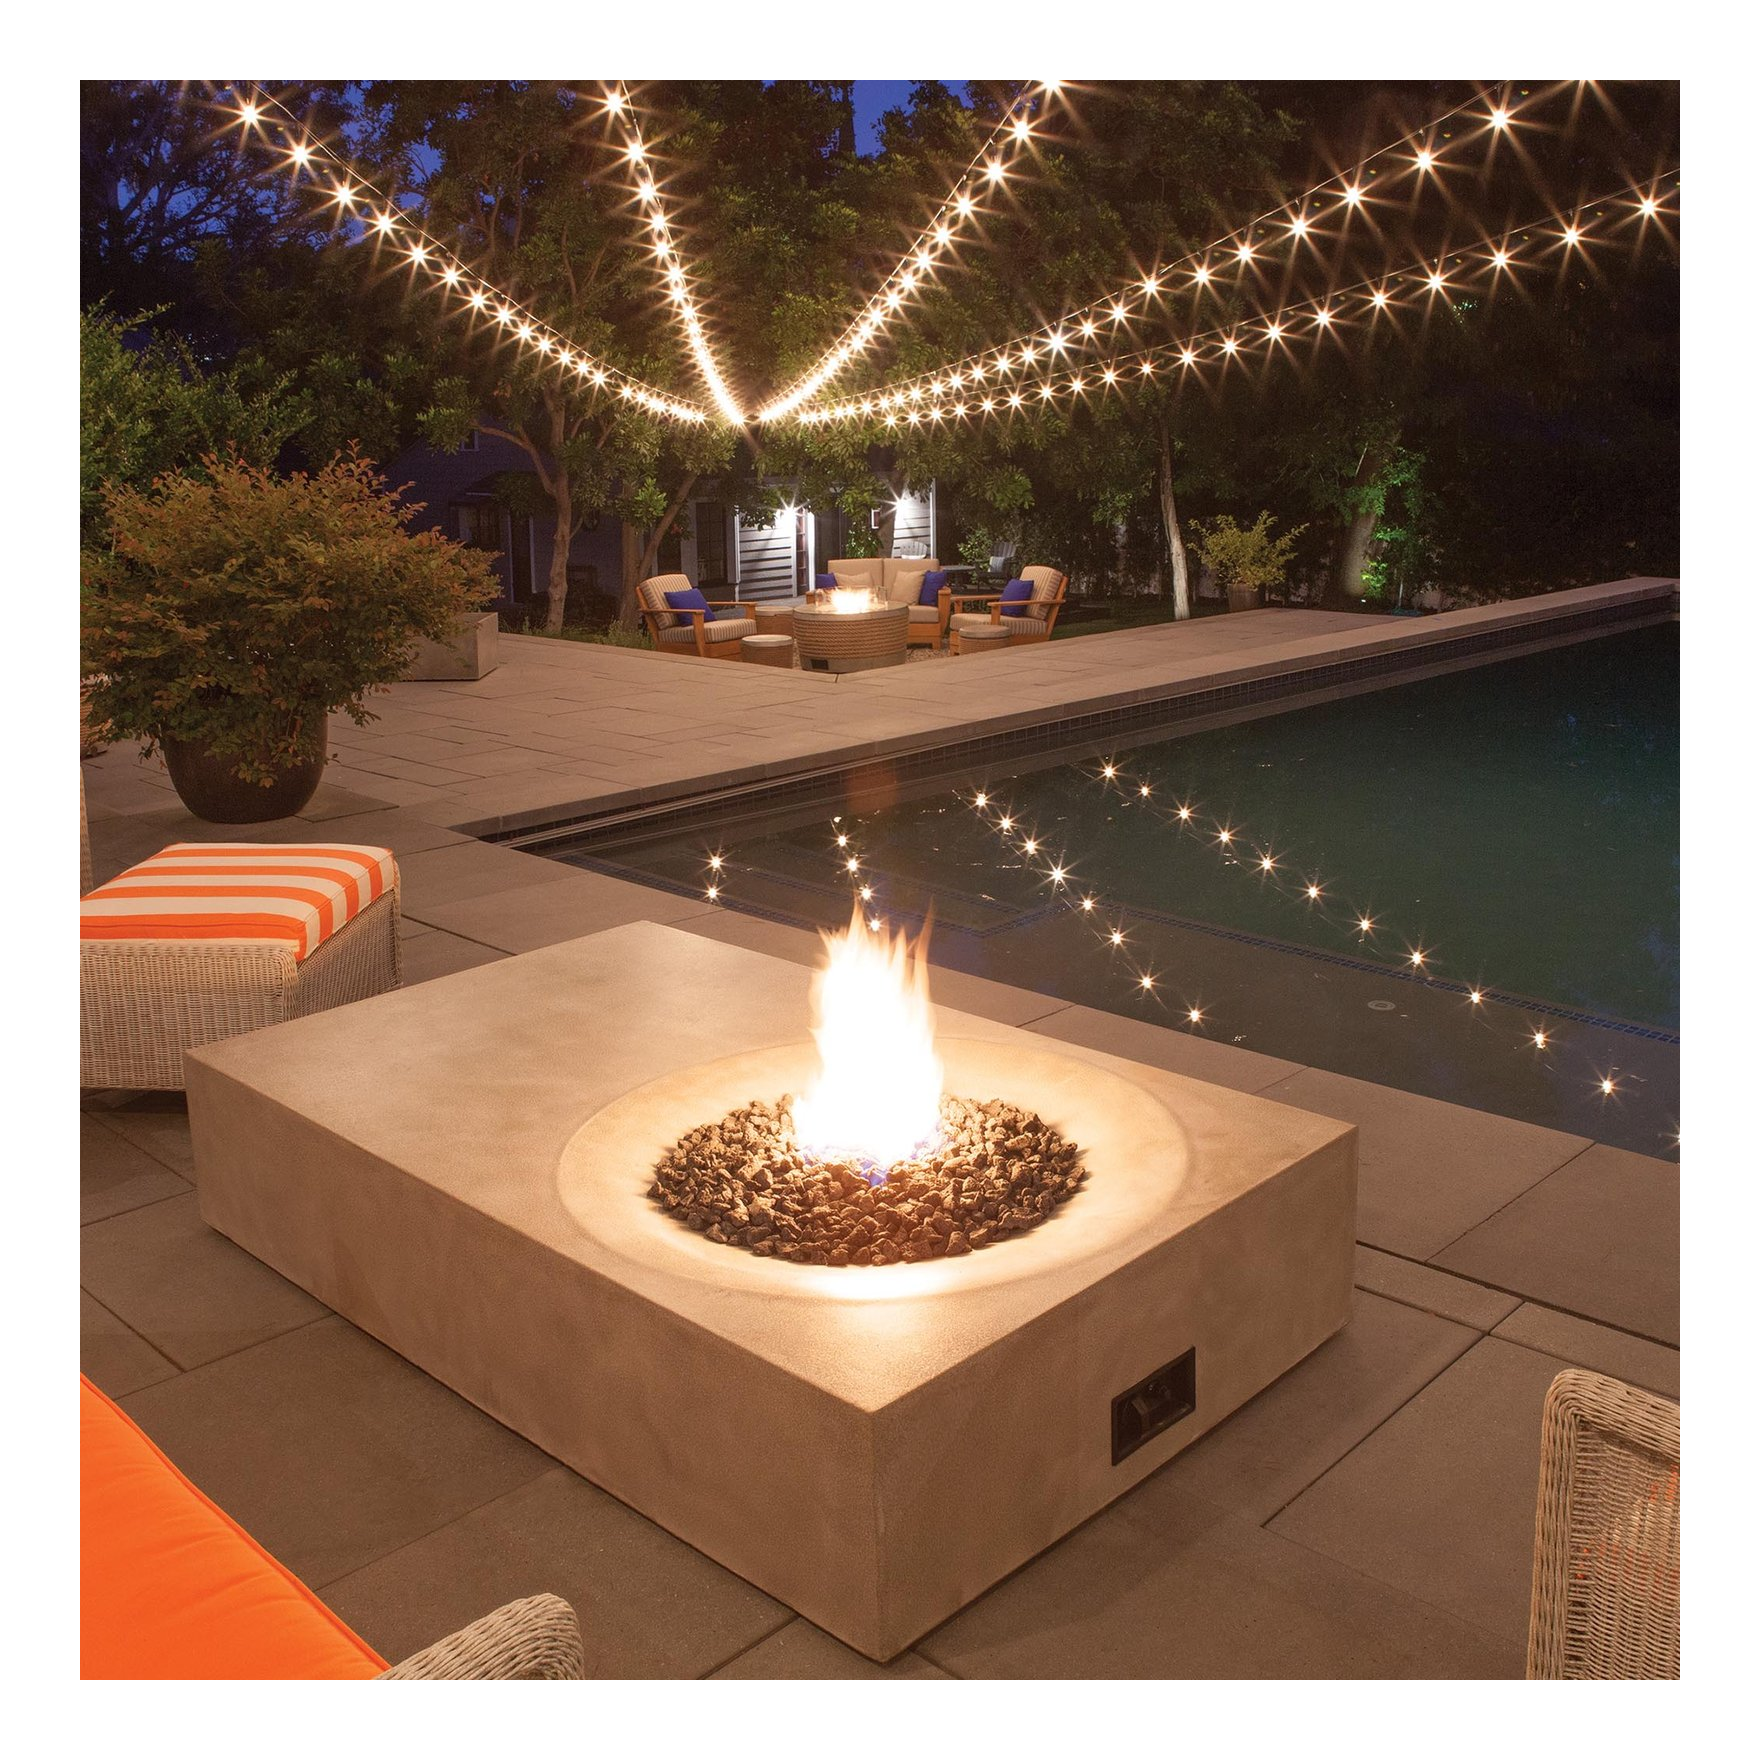 A modern concrete fire pit with stunning lighting by a pool